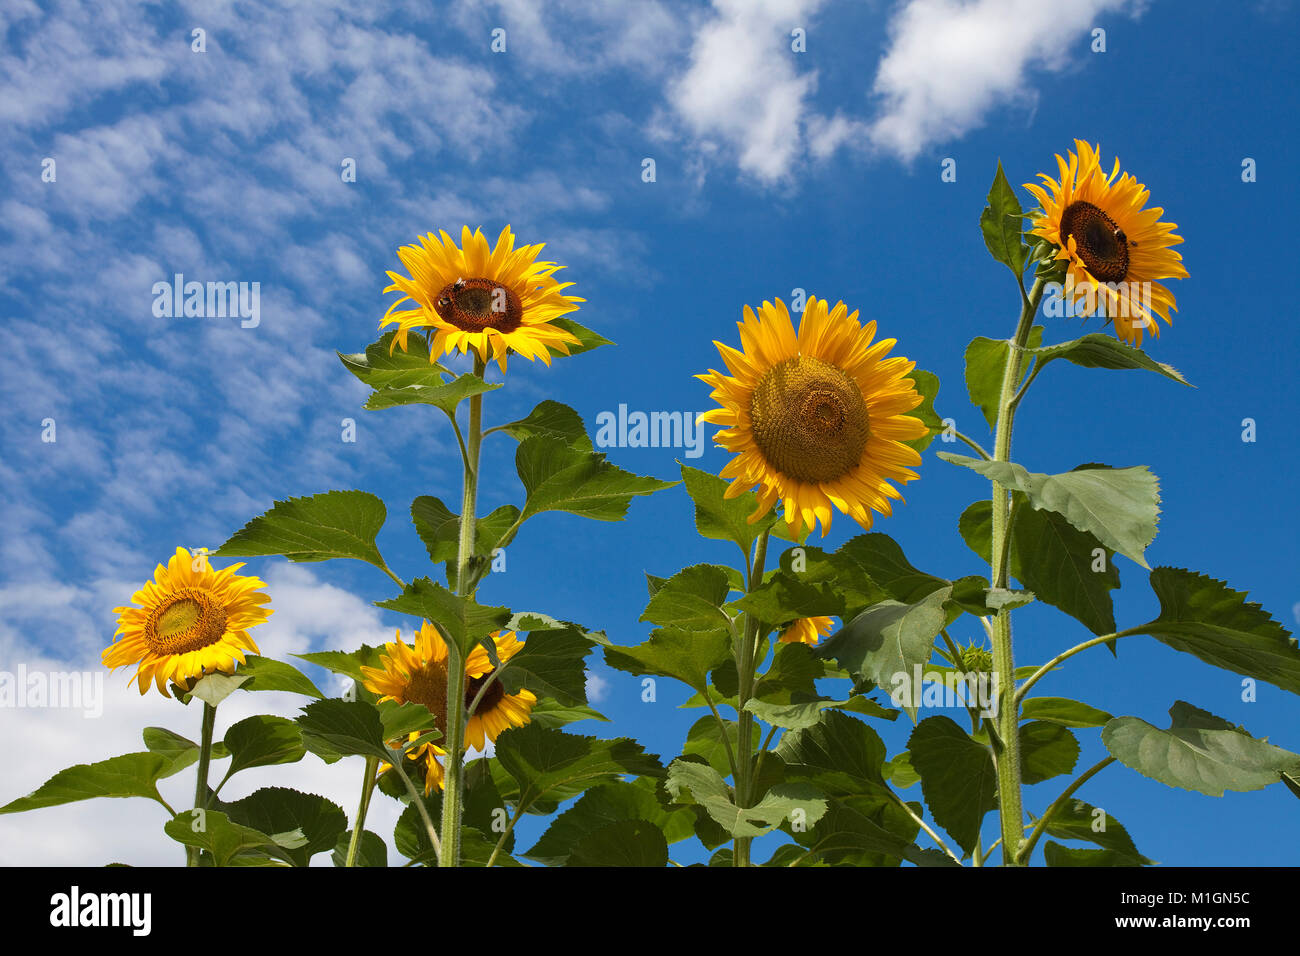 Sunflowers (Helianthus annuus) at Moselle village Schweich, Moselle river, Rhineland-Palatinate, Germany, Europe Stock Photo